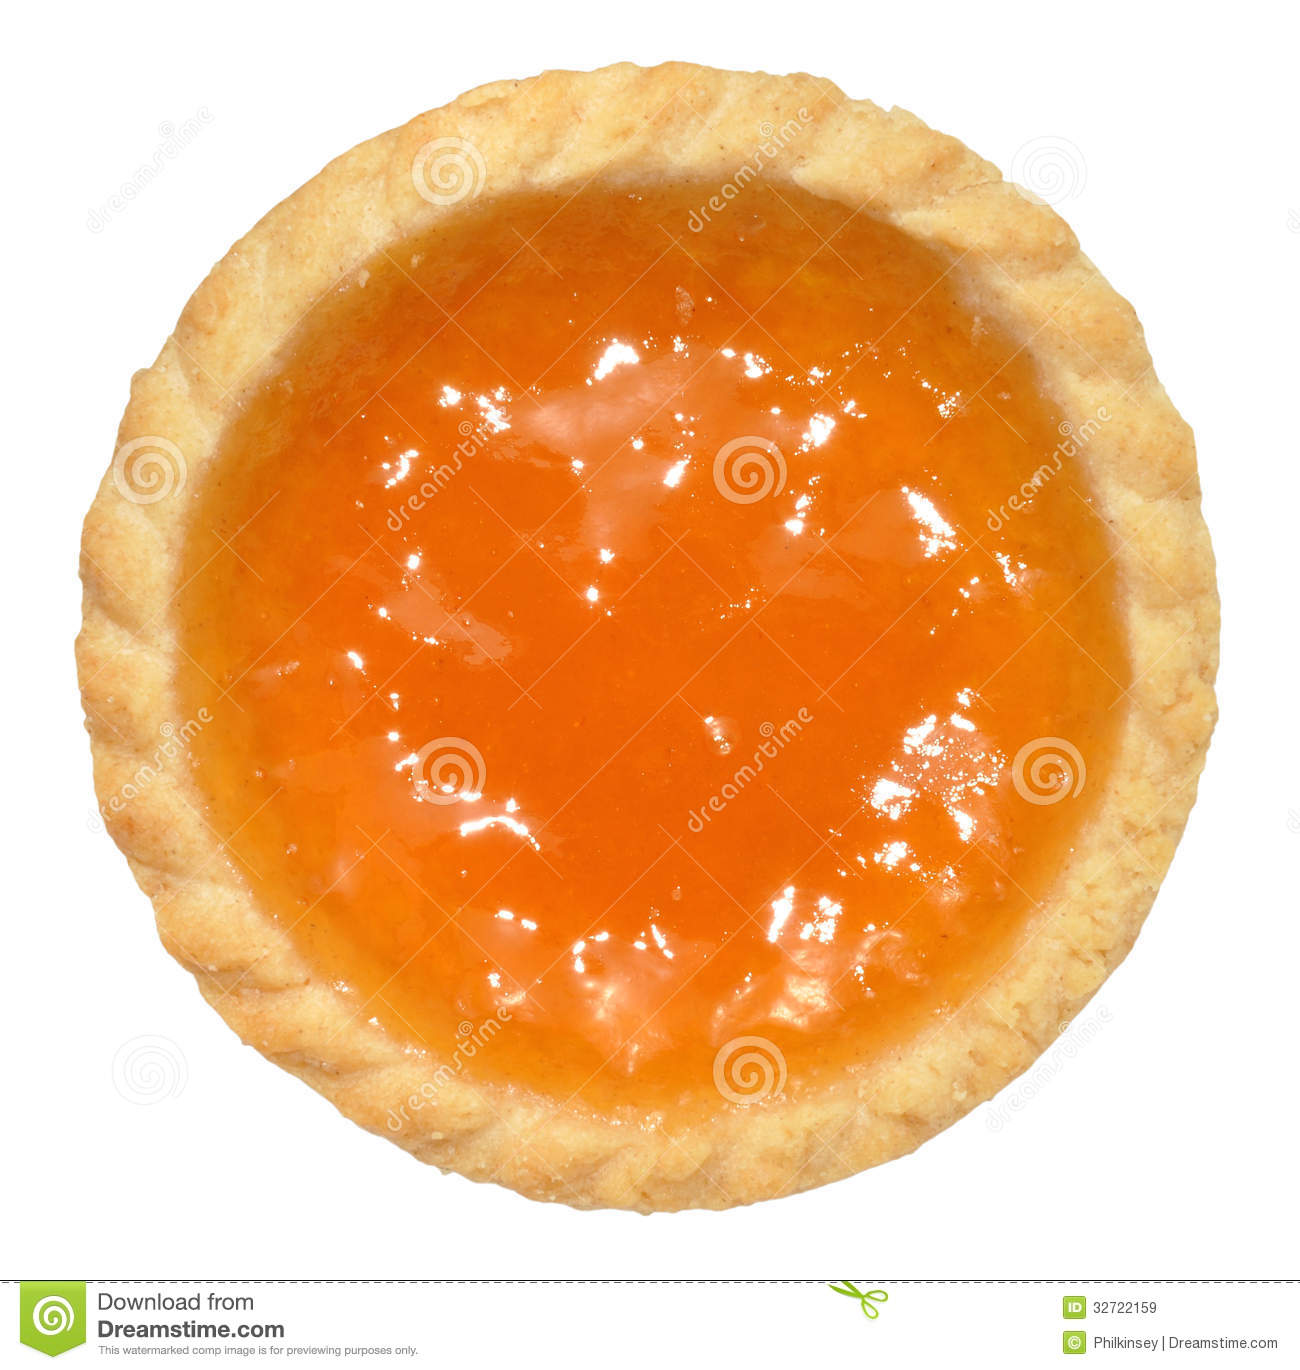 single apricot jam filled tart isolated on a white background.